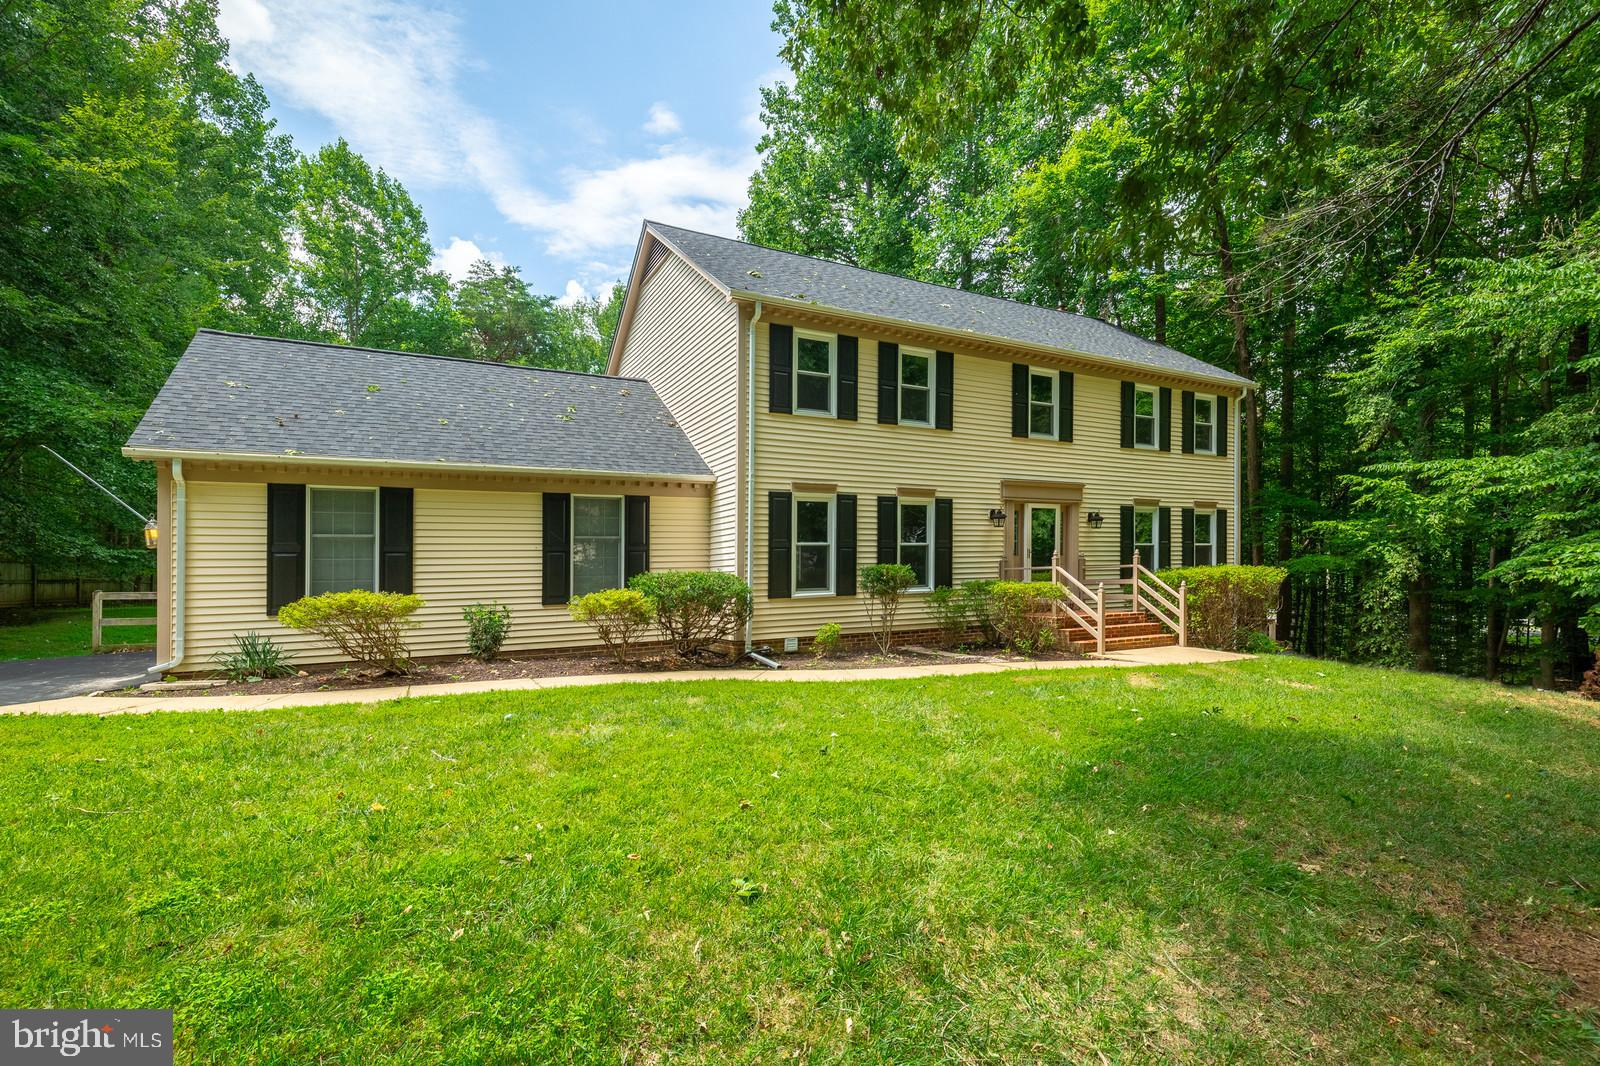 Beautiful Colonial on wooded 1+ acre lot! Hardwood floors & custom molding detail throughout main le